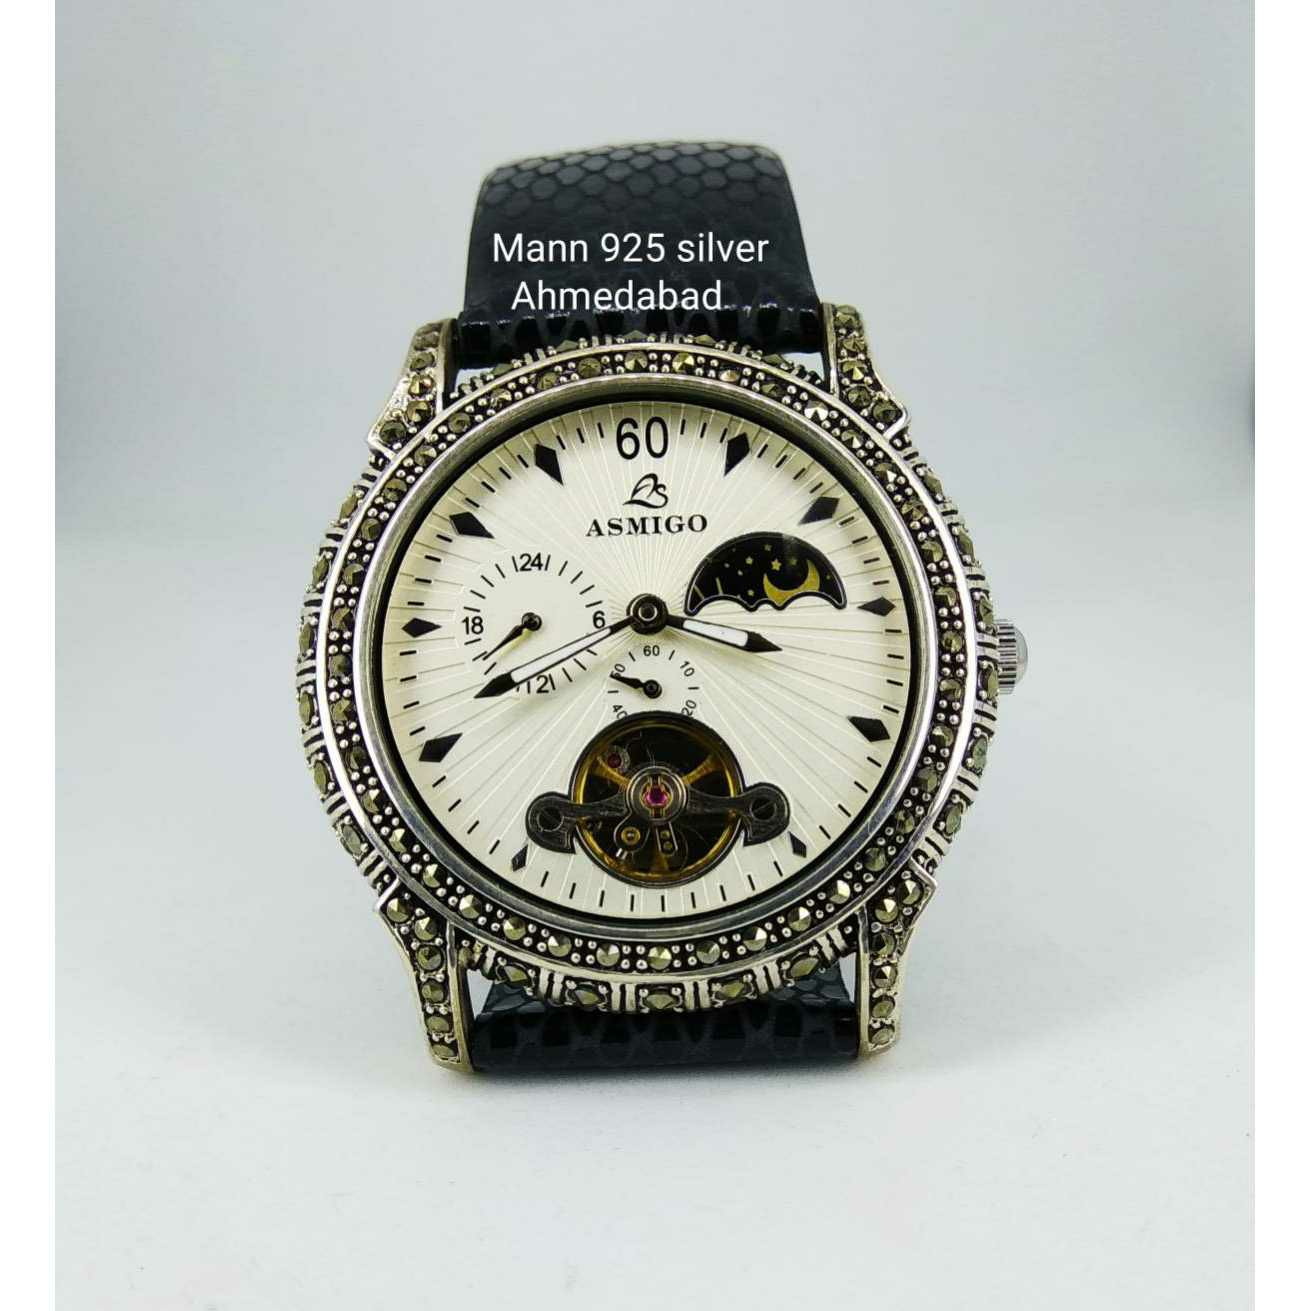 Fancy Expensive 925 Silver Gents Watch